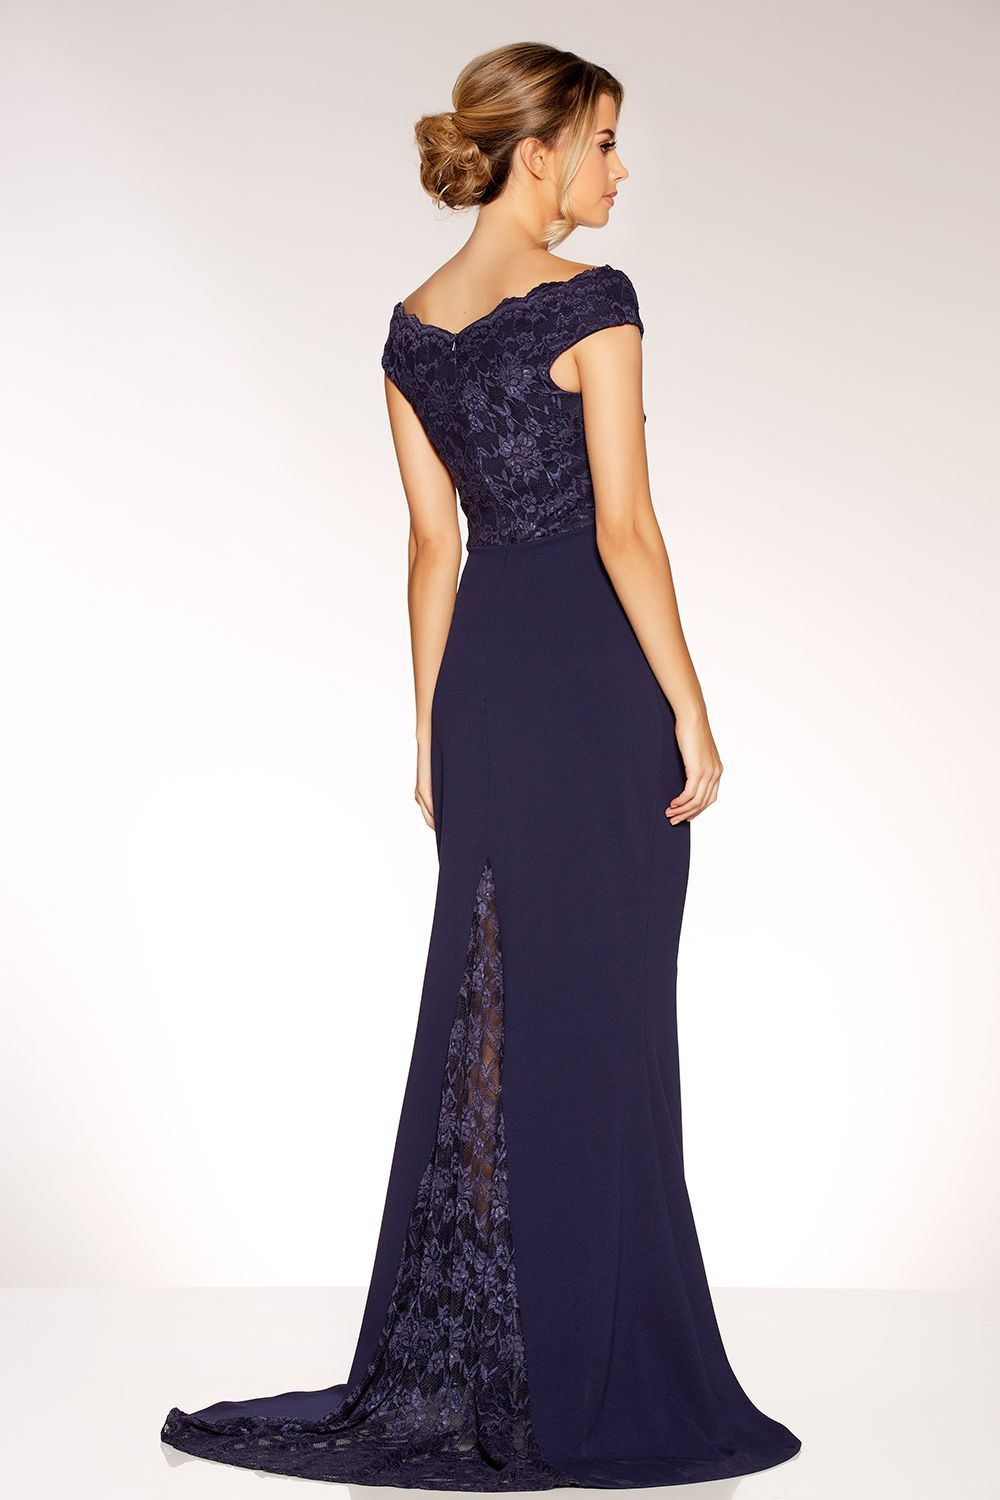 8e71c1f40ad Navy Lace Bardot Fishtail Maxi Dress - Quiz Clothing